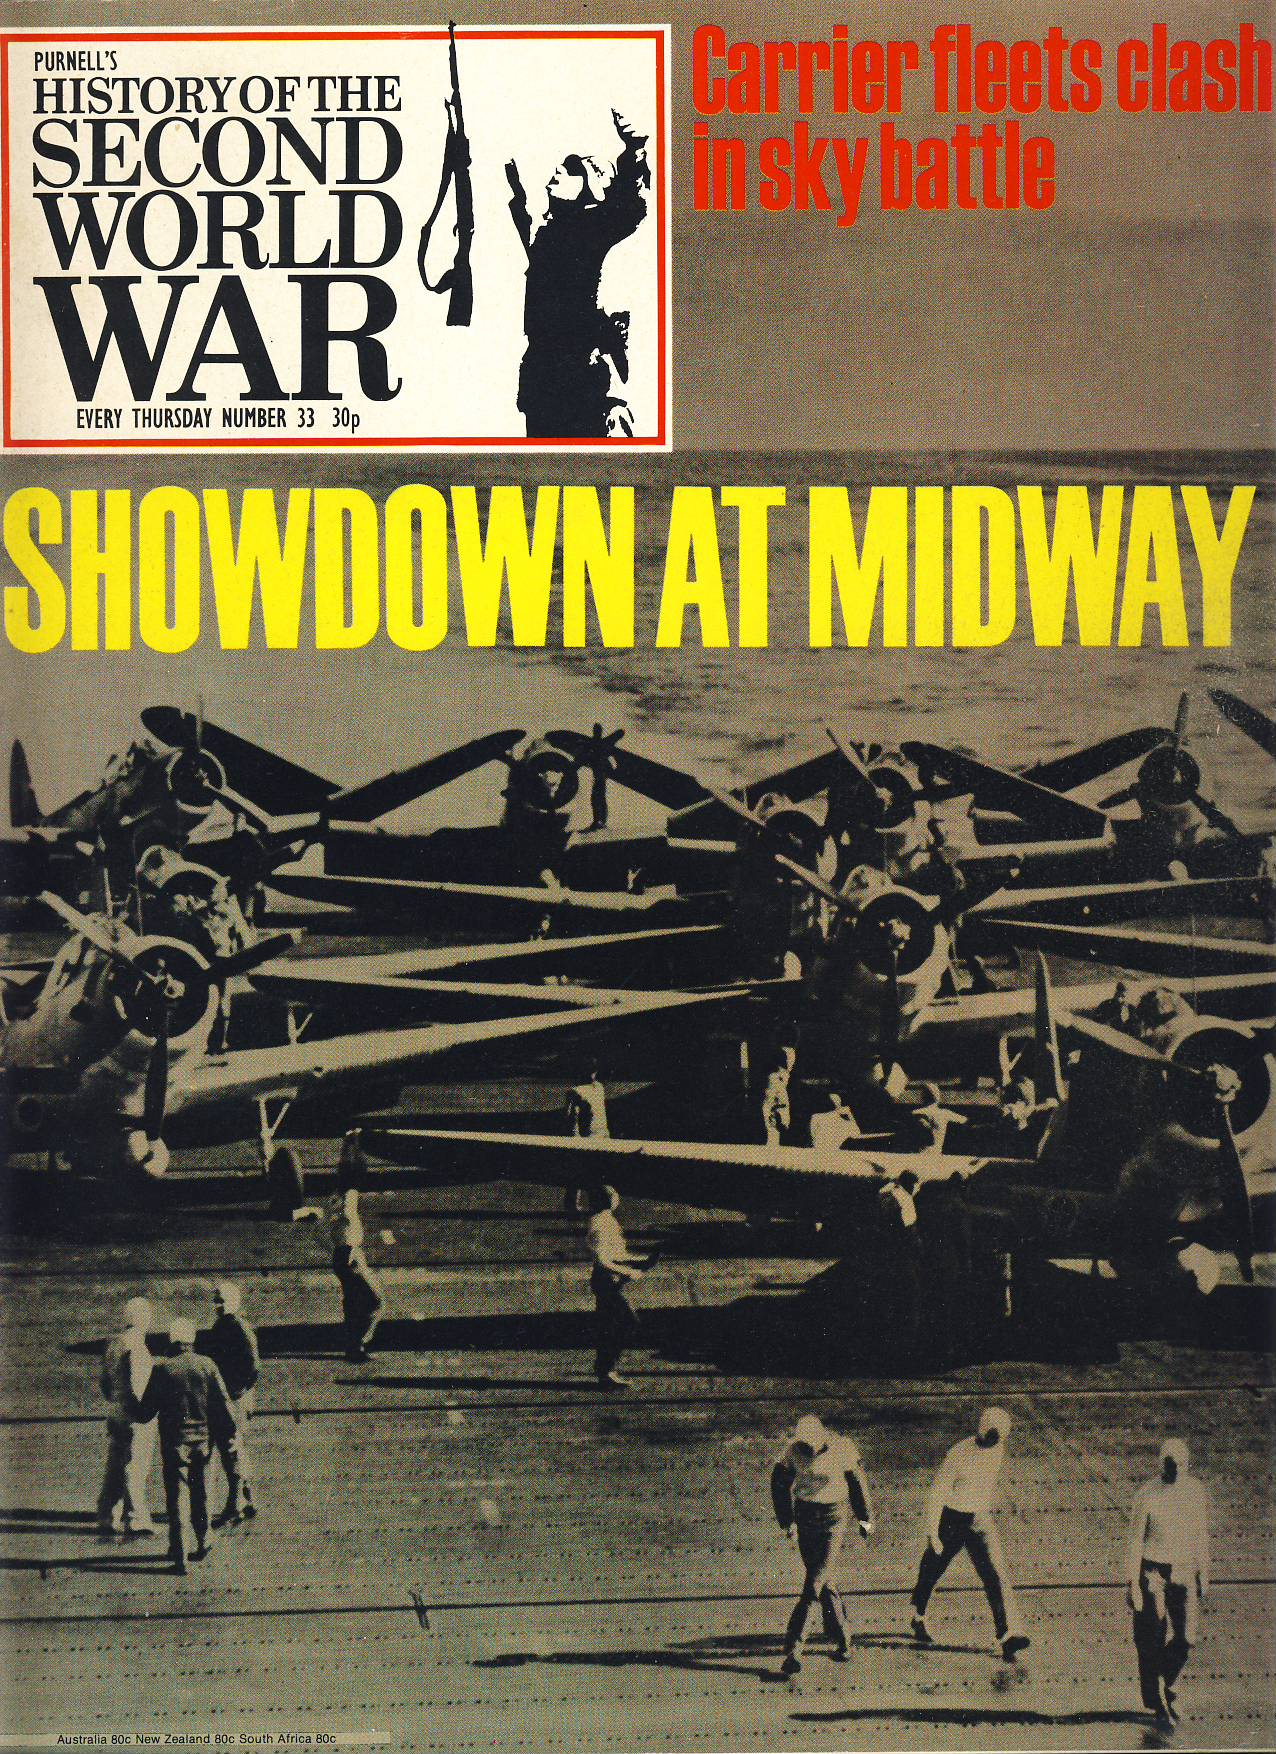 History of the Second World War Magazine #33 Showdown at Midway Carrier fleets clash in sky battle A vintage Purnell's weekly magazine in good read condition. Please see larger photo and full description for details.